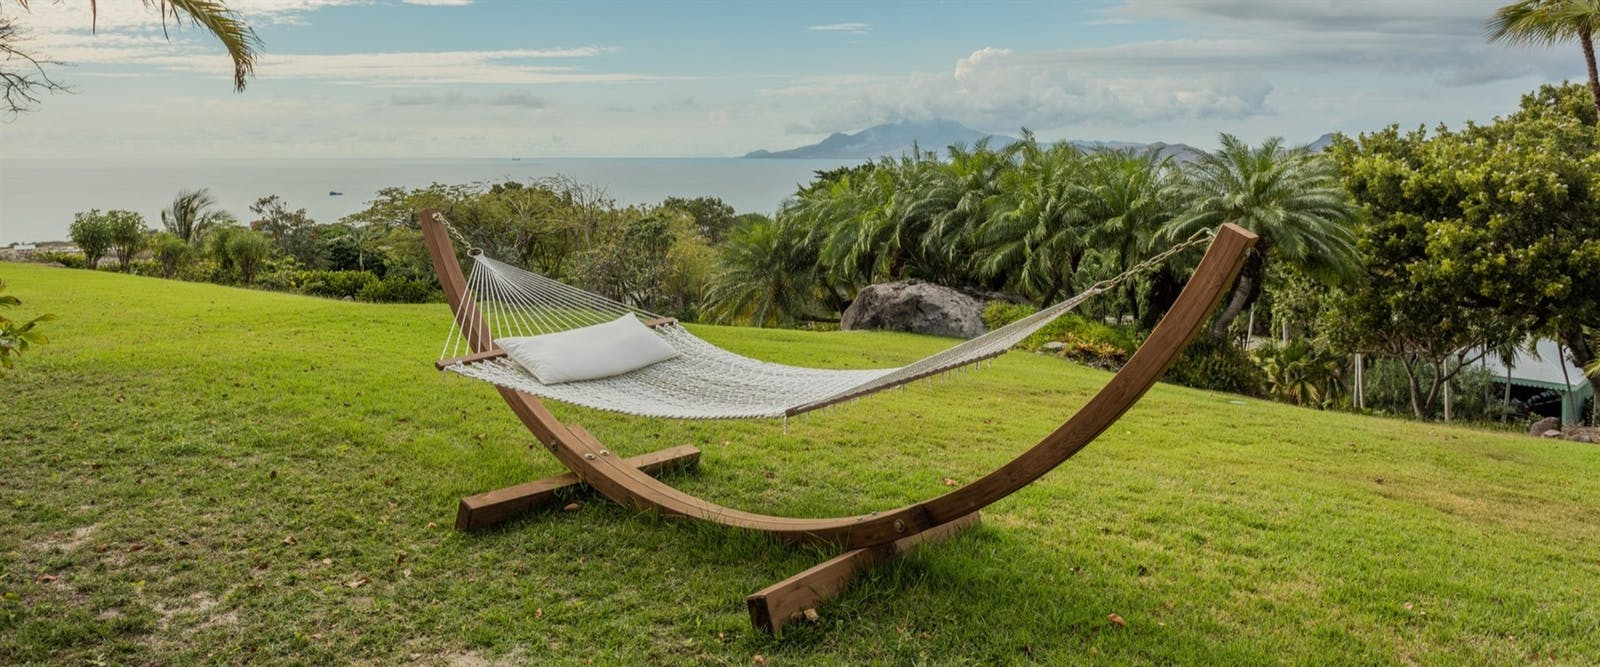 Relaxing on a hammock at Four Seasons Resort Nevis